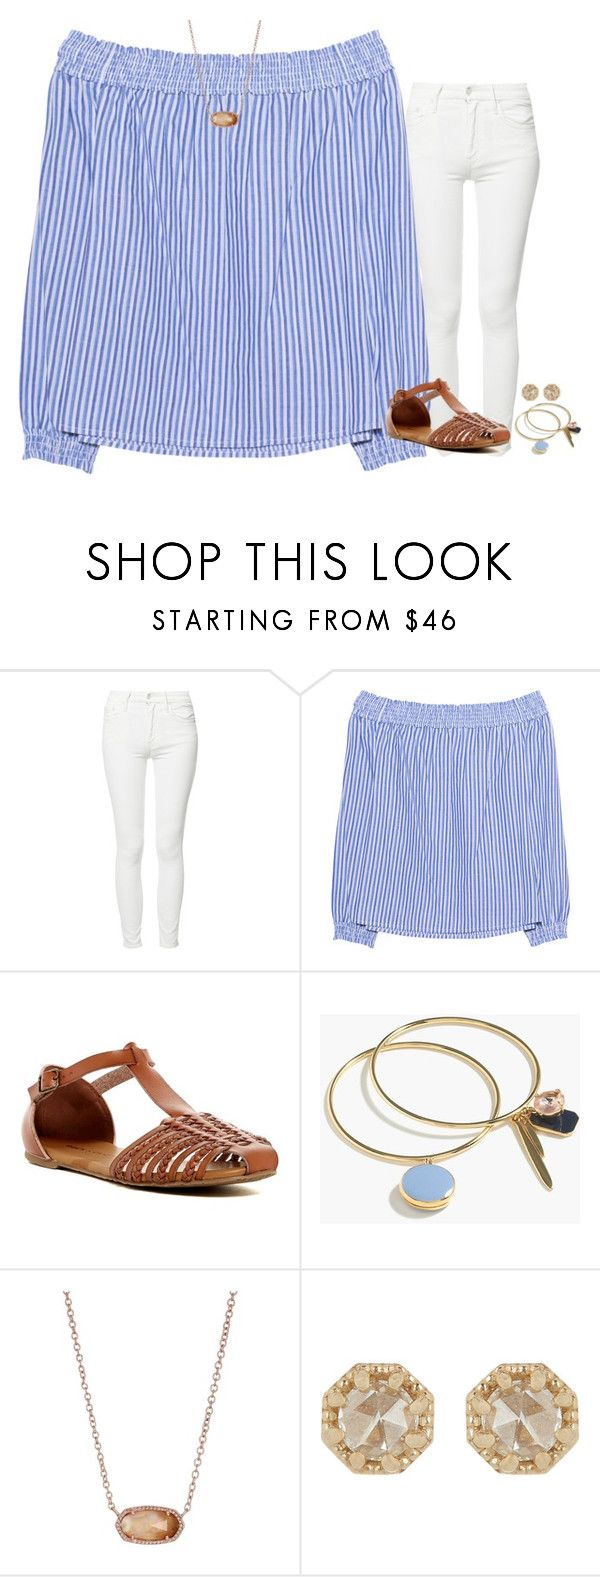 """I had chick-fa-la for the first time yesterday"" by stripedprep ❤ liked on Polyvore featuring Mother, rag & bone, Rock & Candy, J.Crew, Kendra Scott and Grace Lee Designs"